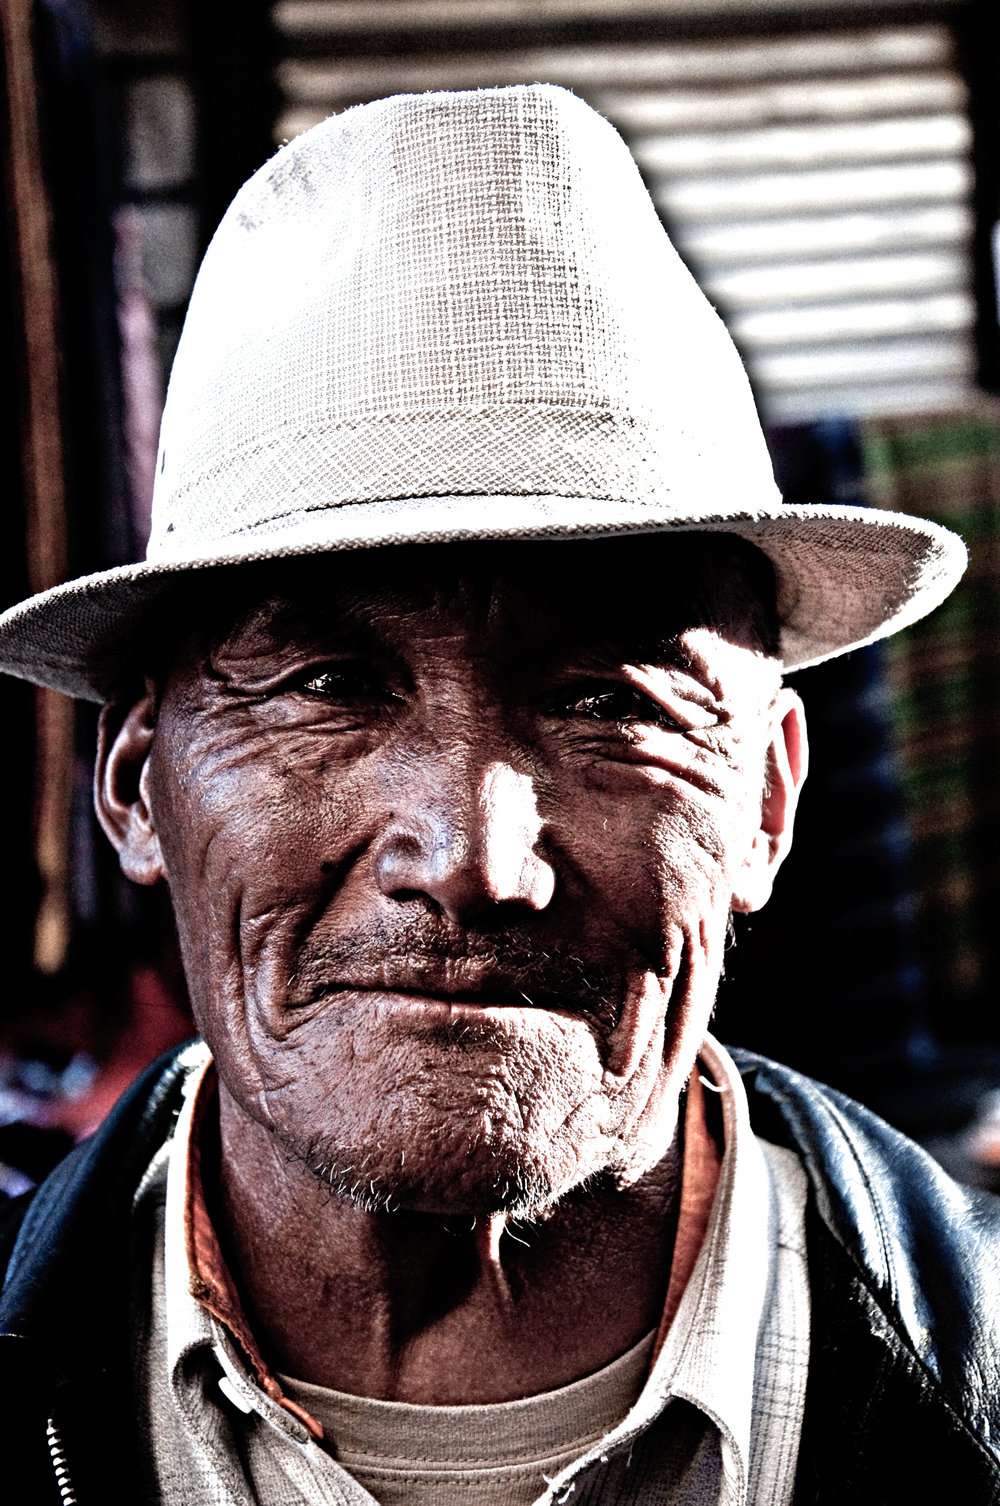 20091027-TIBET.GRANDFATHER.jpg